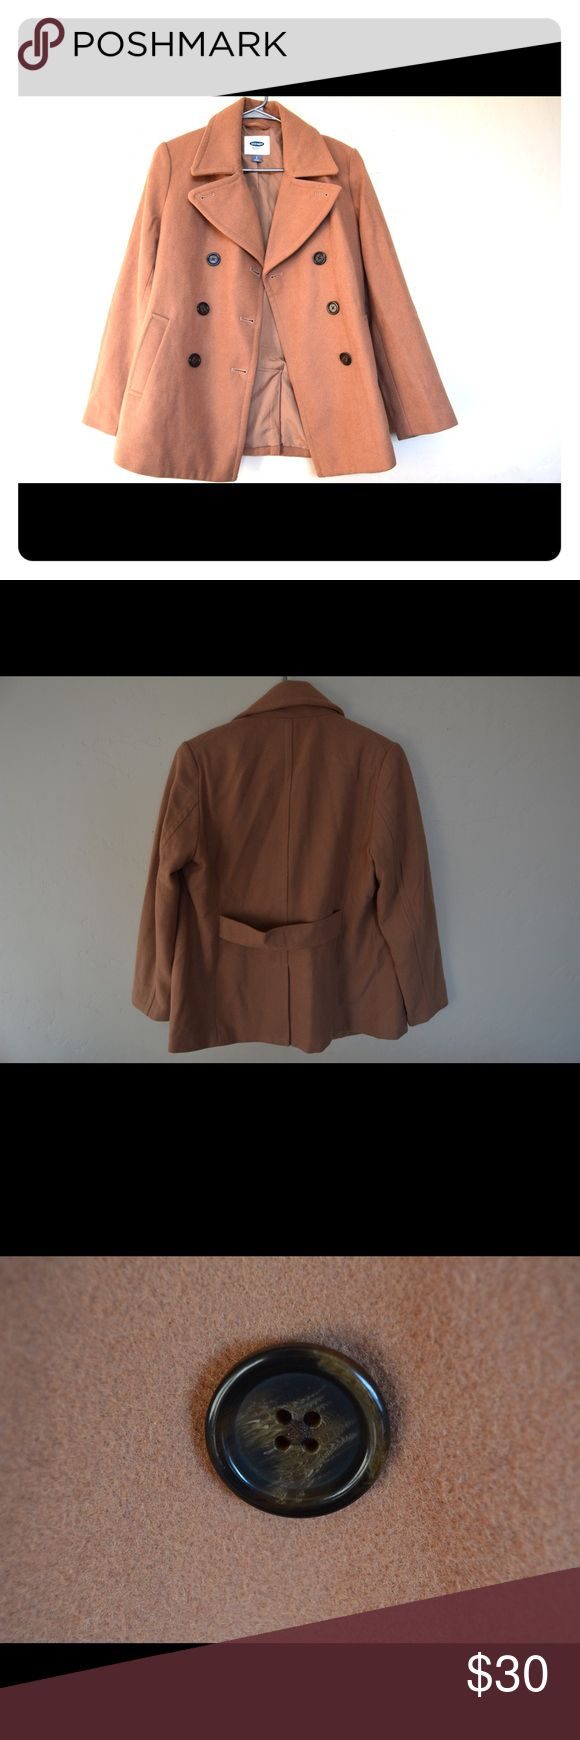 Camel Old Navy Pea Coat Beautiful camel colored pea coat from Old Navy. Only worn twice. Bought it thinking I'd wear it but didn't need it since I moved to a warmer climate. The color is most accurate in the first photo. Beautiful color and matches a lot. Would be a great gift. Keeps you warm. Dry clean only. Posted a close up of he buttons to show their detail. The only flaw is a slight thread coming up (photo shown) and that was like that when I purchased it. Let me know if you have any…